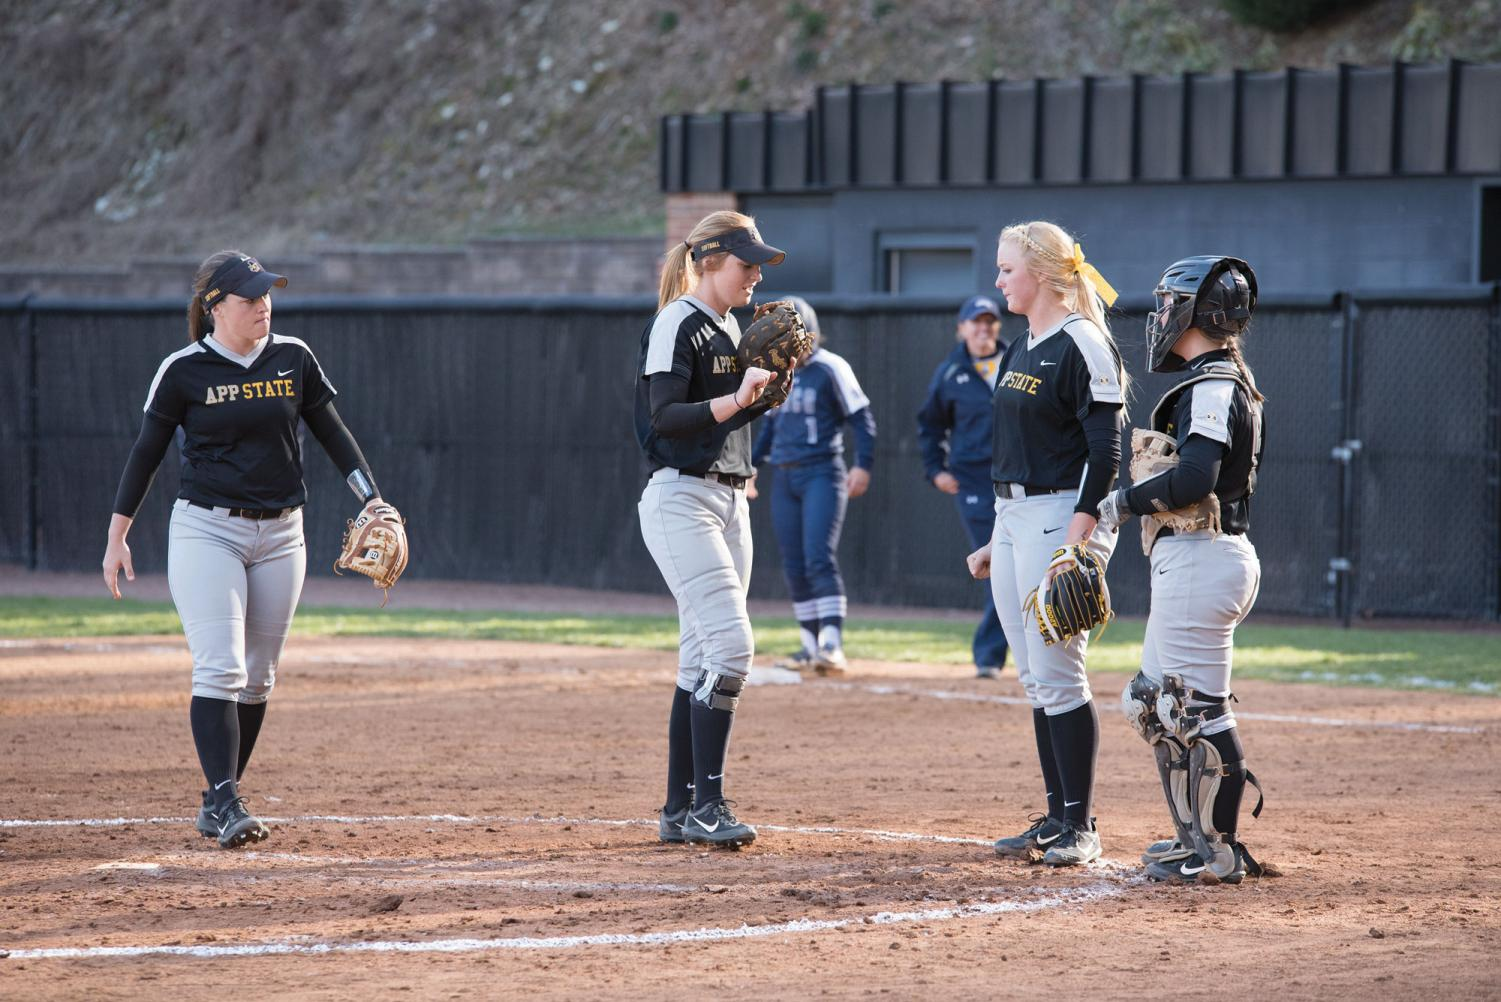 Players on the App State softball team discuss the next play during a timeout in the 2017 season. Courtesy of Halle Keighton.